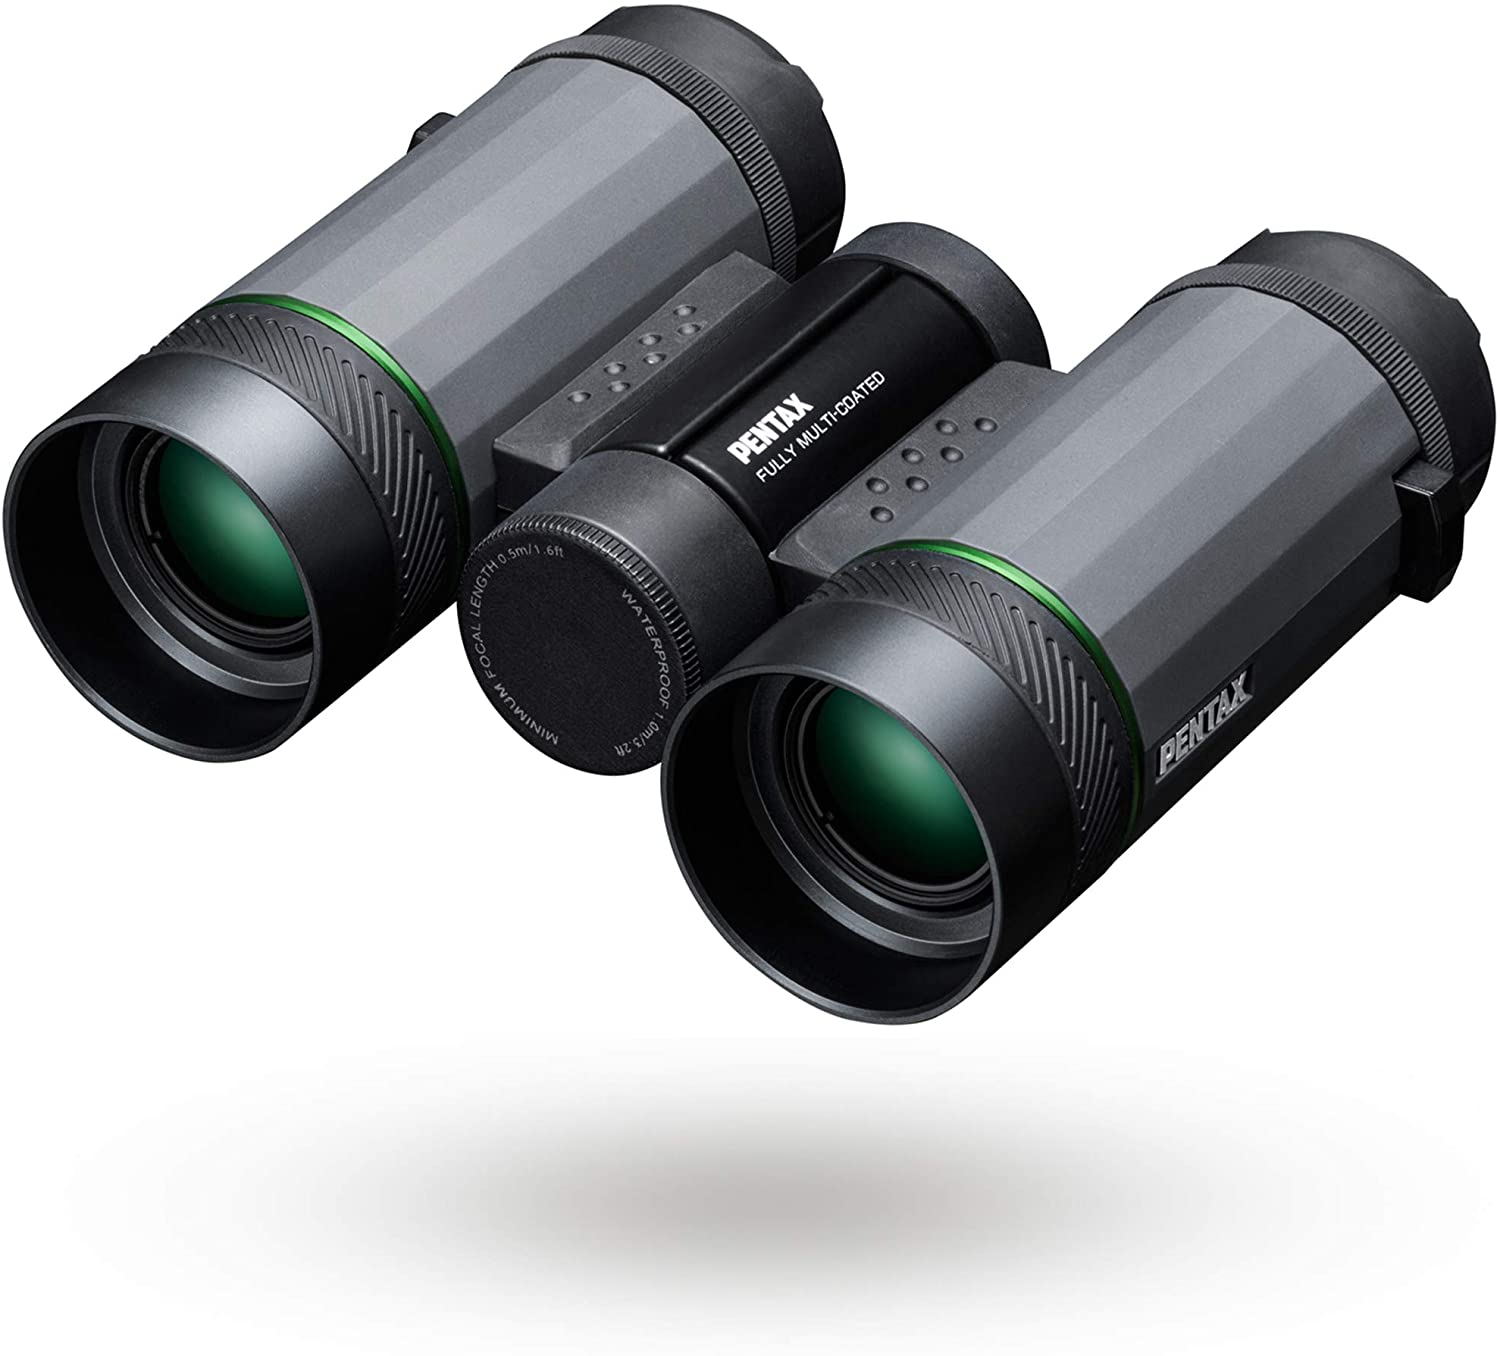 Pentax VD 4x20 WP unique 3 in 1 binoculars, monoculars and telescope with the vesatility to capture the emotion of a variety of scenes. Bright, clear, high contrast, excellent optical performance, hig